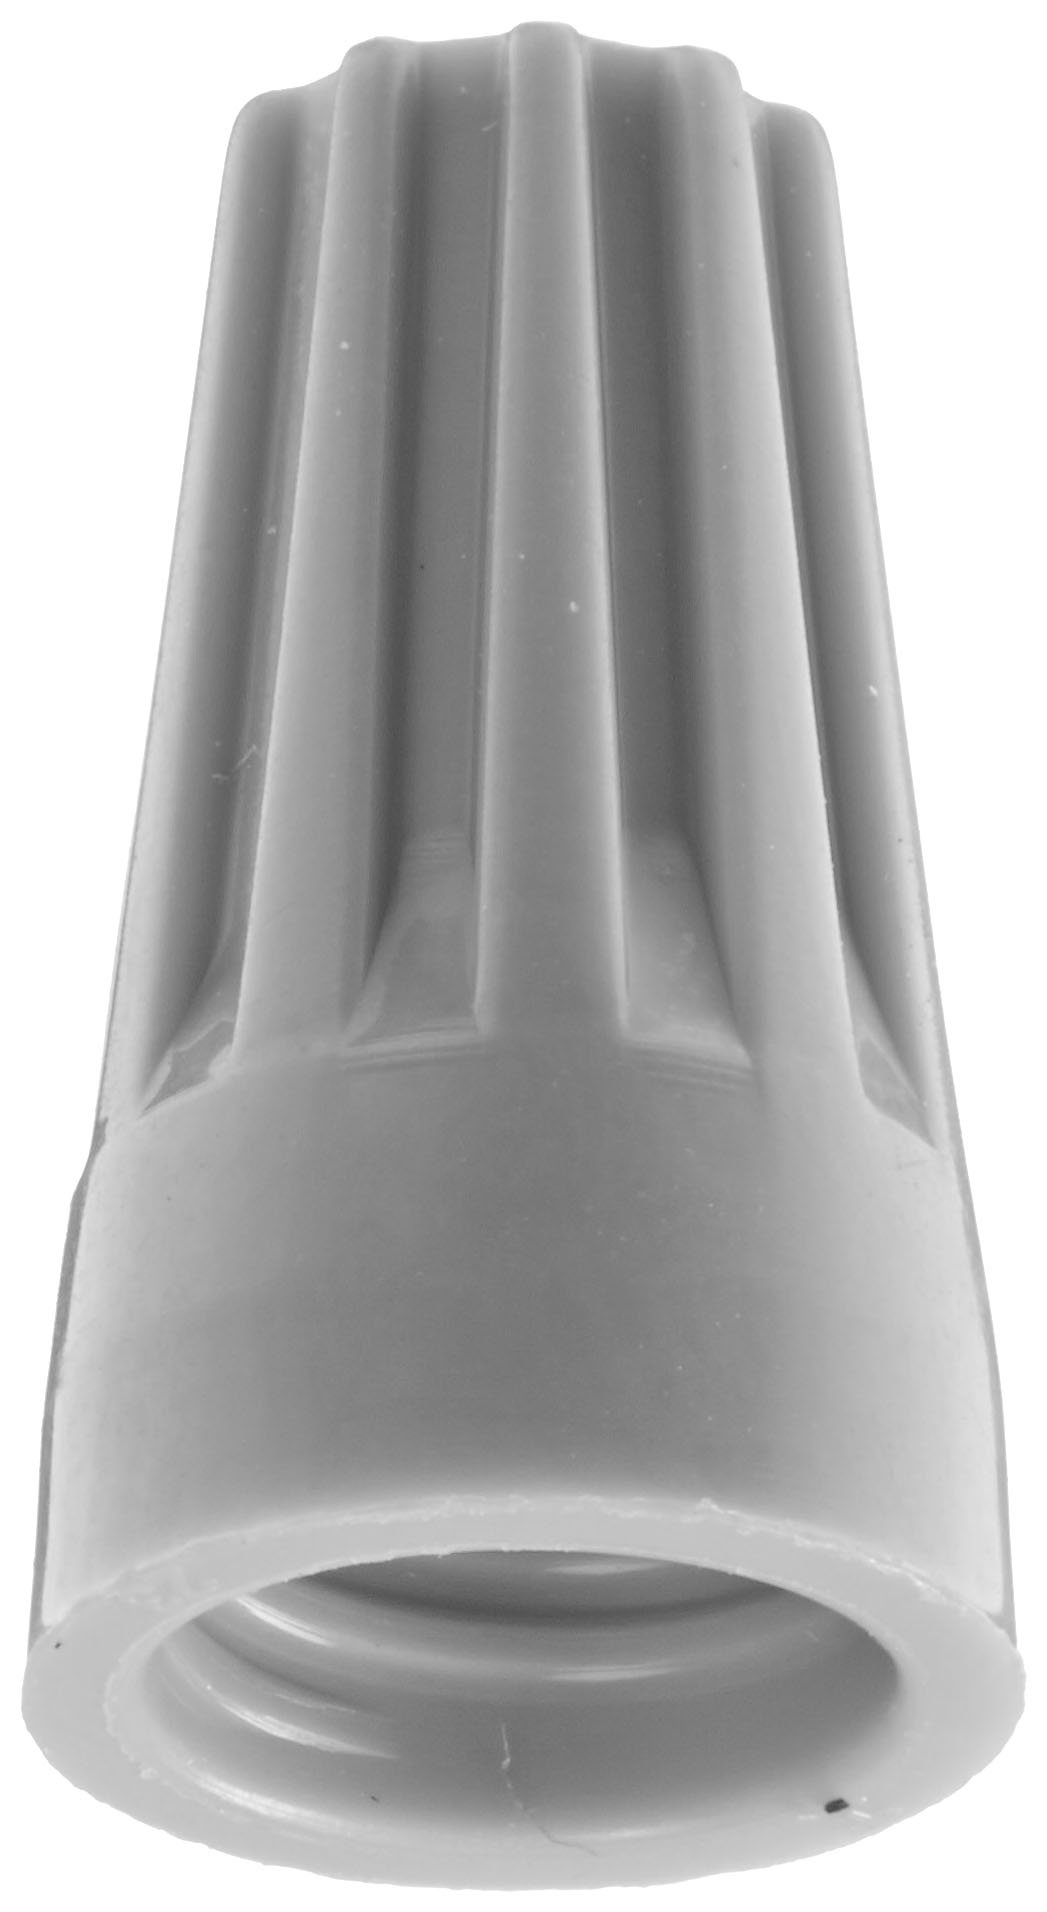 Easy-Twist Twist-On Wire Connector, Standard Type, 22-14 AWG Wire Range, 300V, Grey (Box of 100)